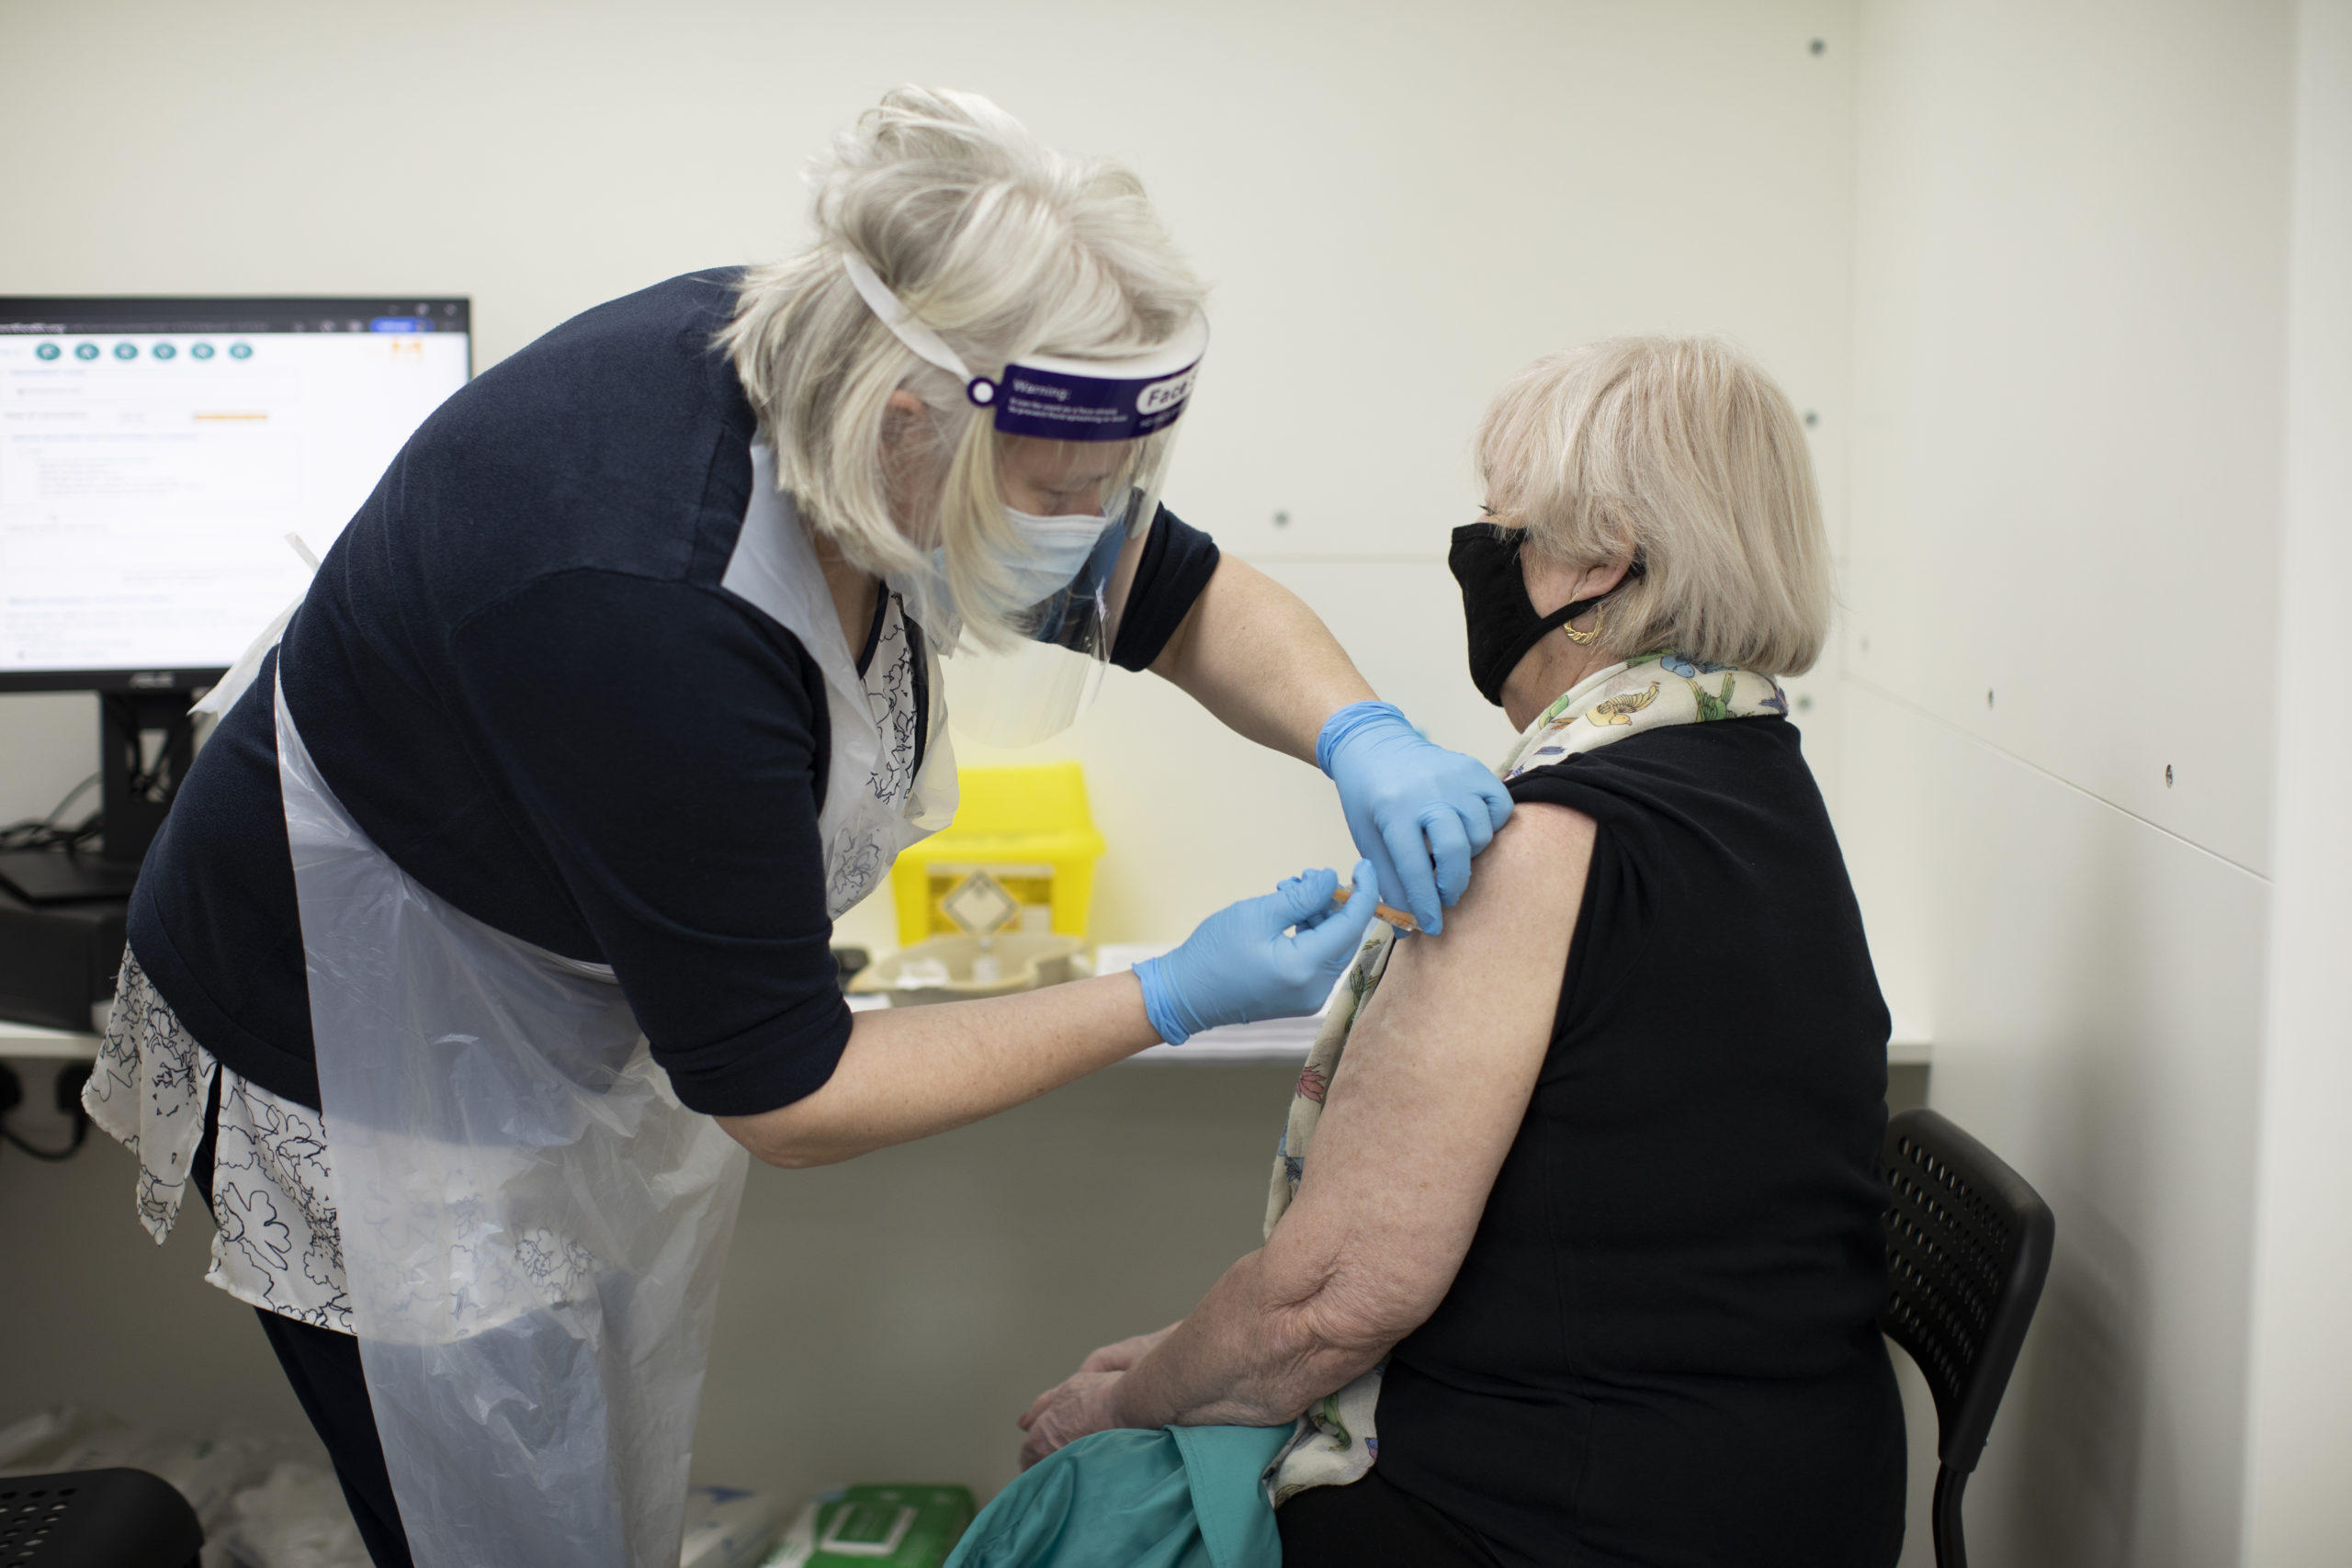 Patients receive the AstraZeneca COVID-19 vaccine at Copes pharmacy in Streatham on February 04, 2021 in London, England. (Dan Kitwood/Getty Images)